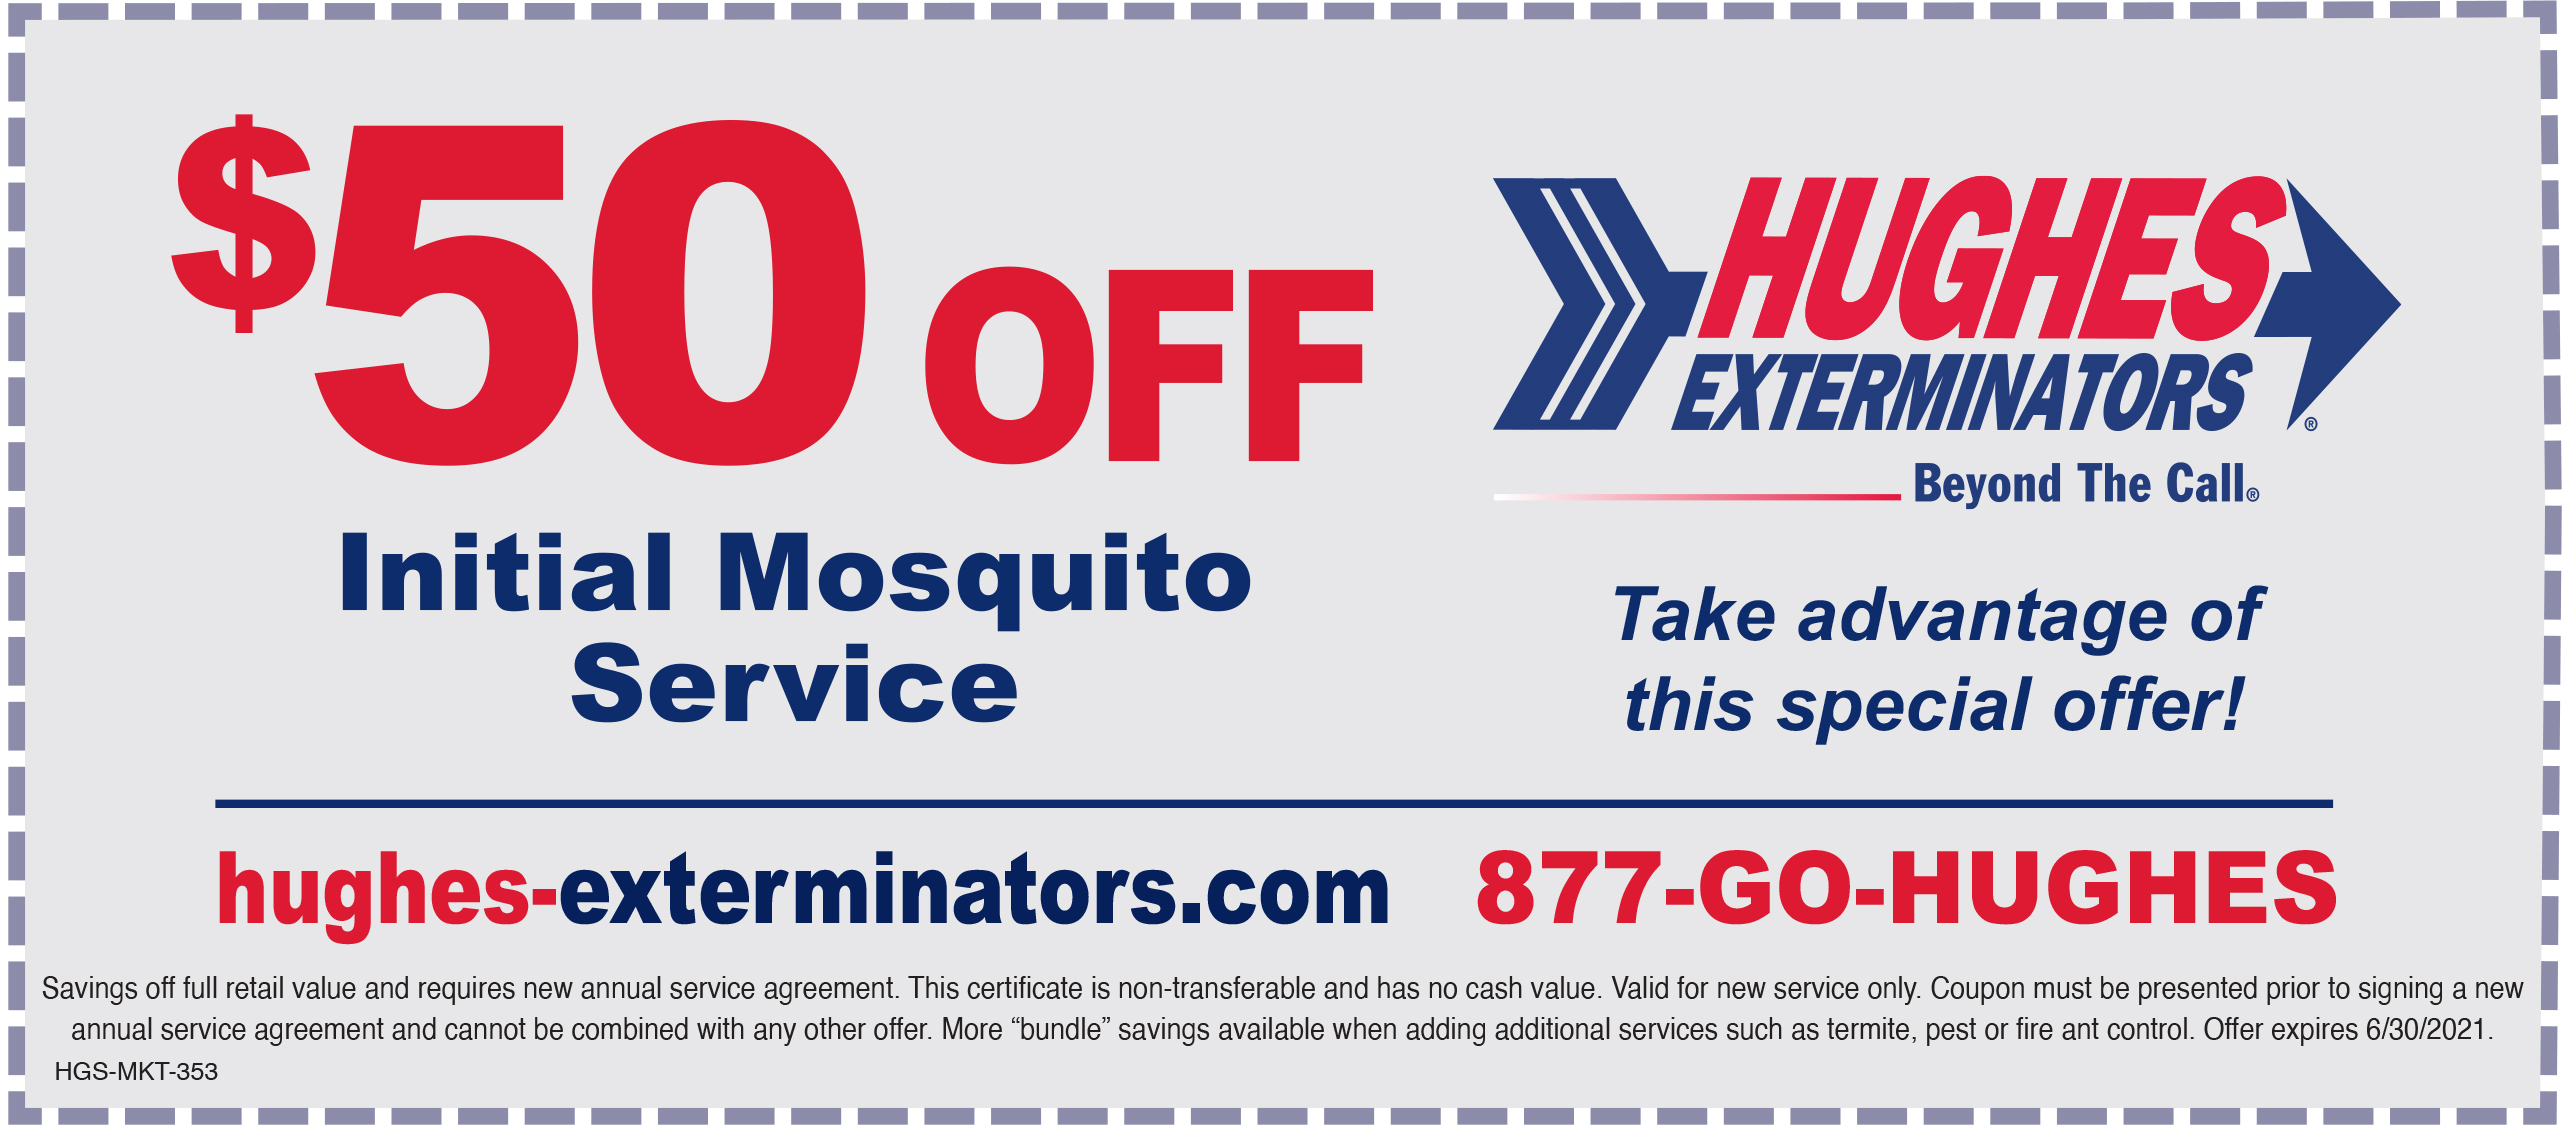 coupon-mosquito_hughes_2021.jpg